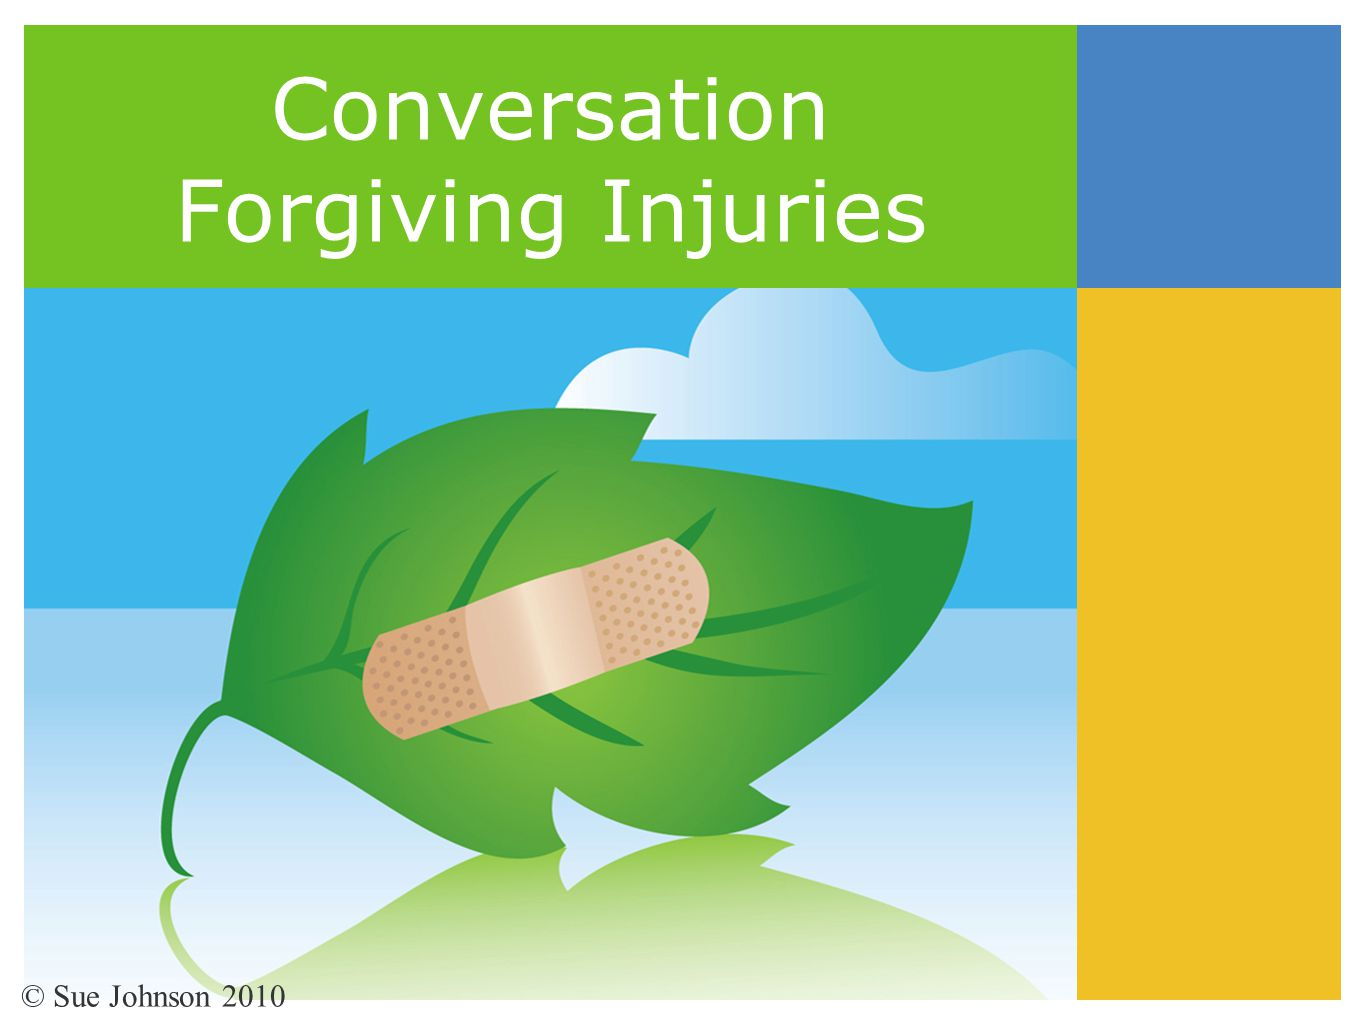 Conversation Forgiving Injuries